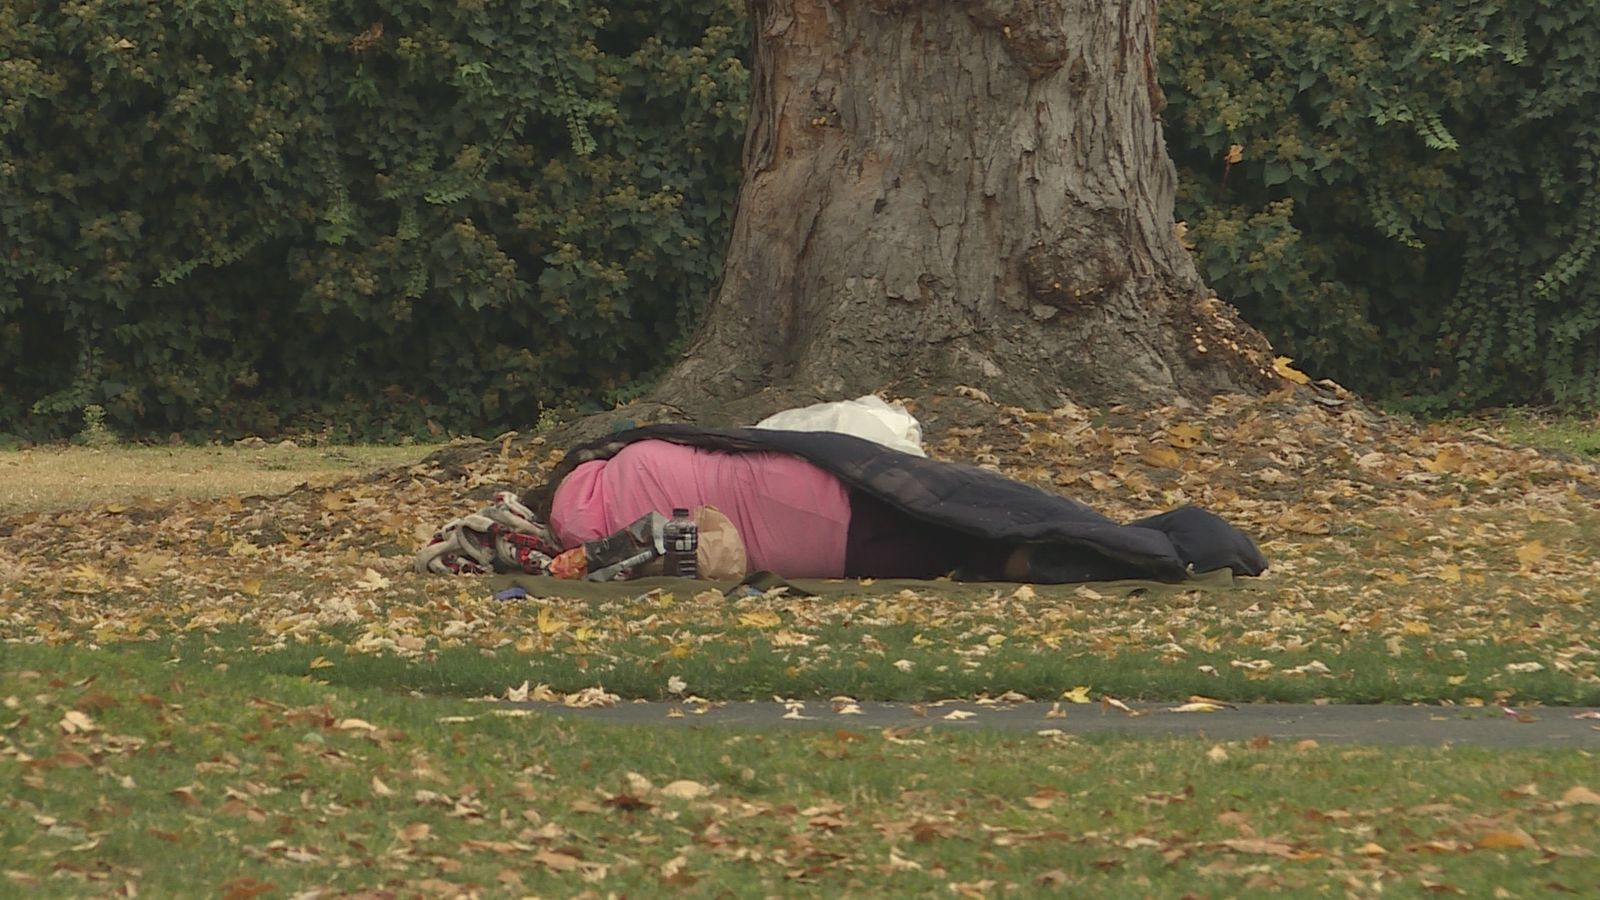 Homeless person in Hawthorne Park. (Carsyn Currier/News 10){ }